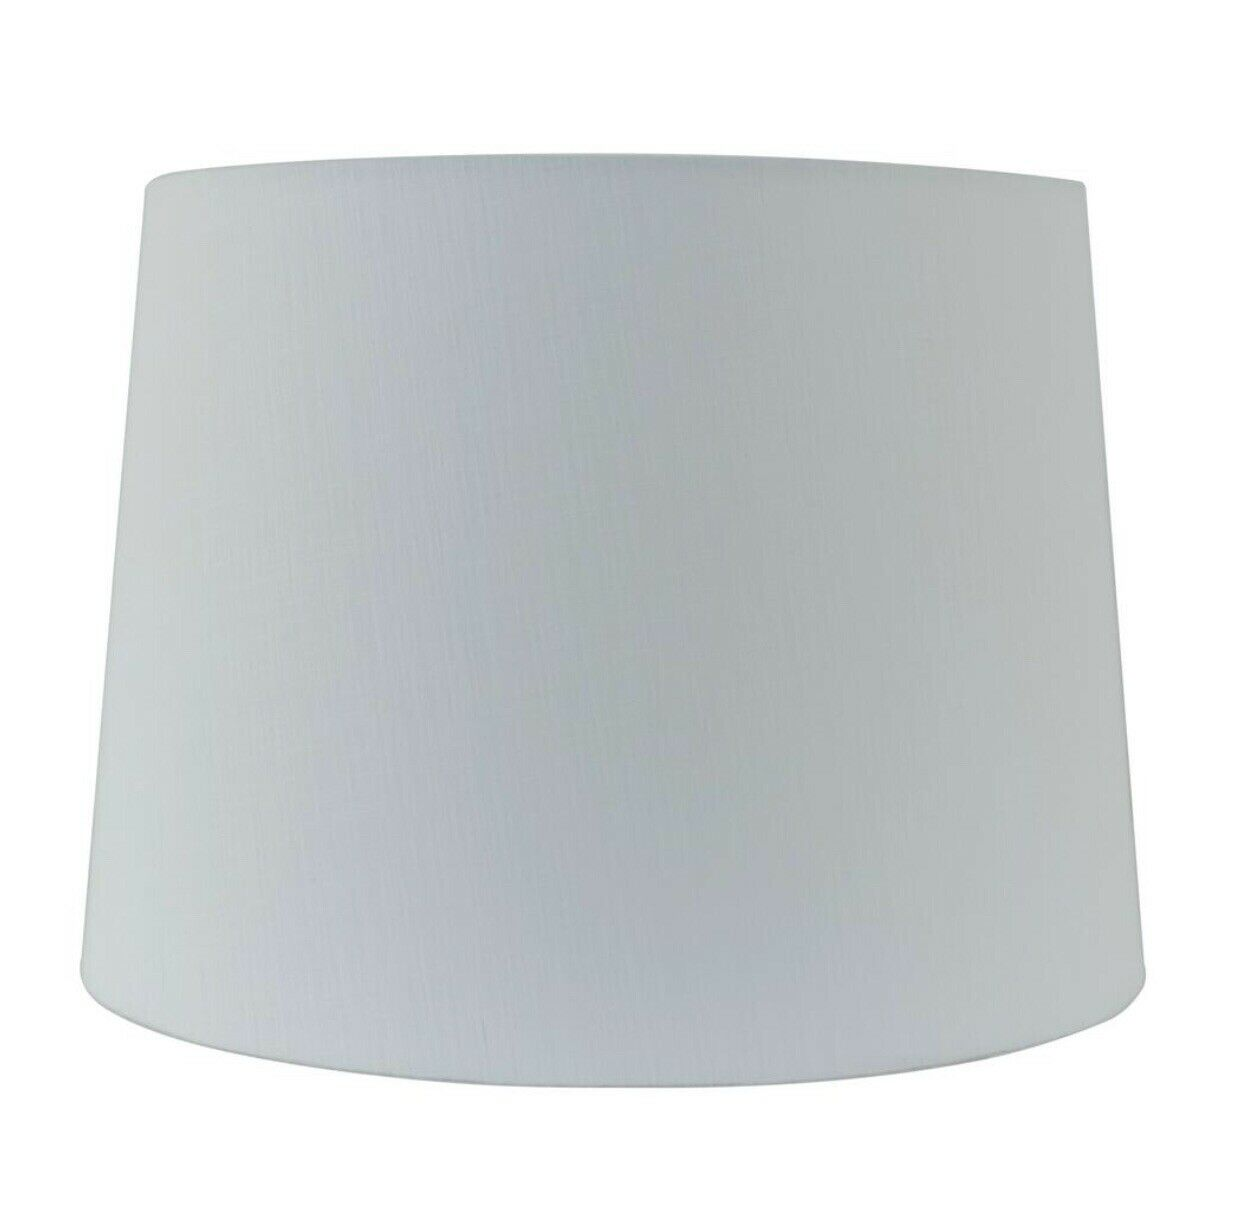 White Linen Hardback Empire Lamp Shade For Sale Online Ebay